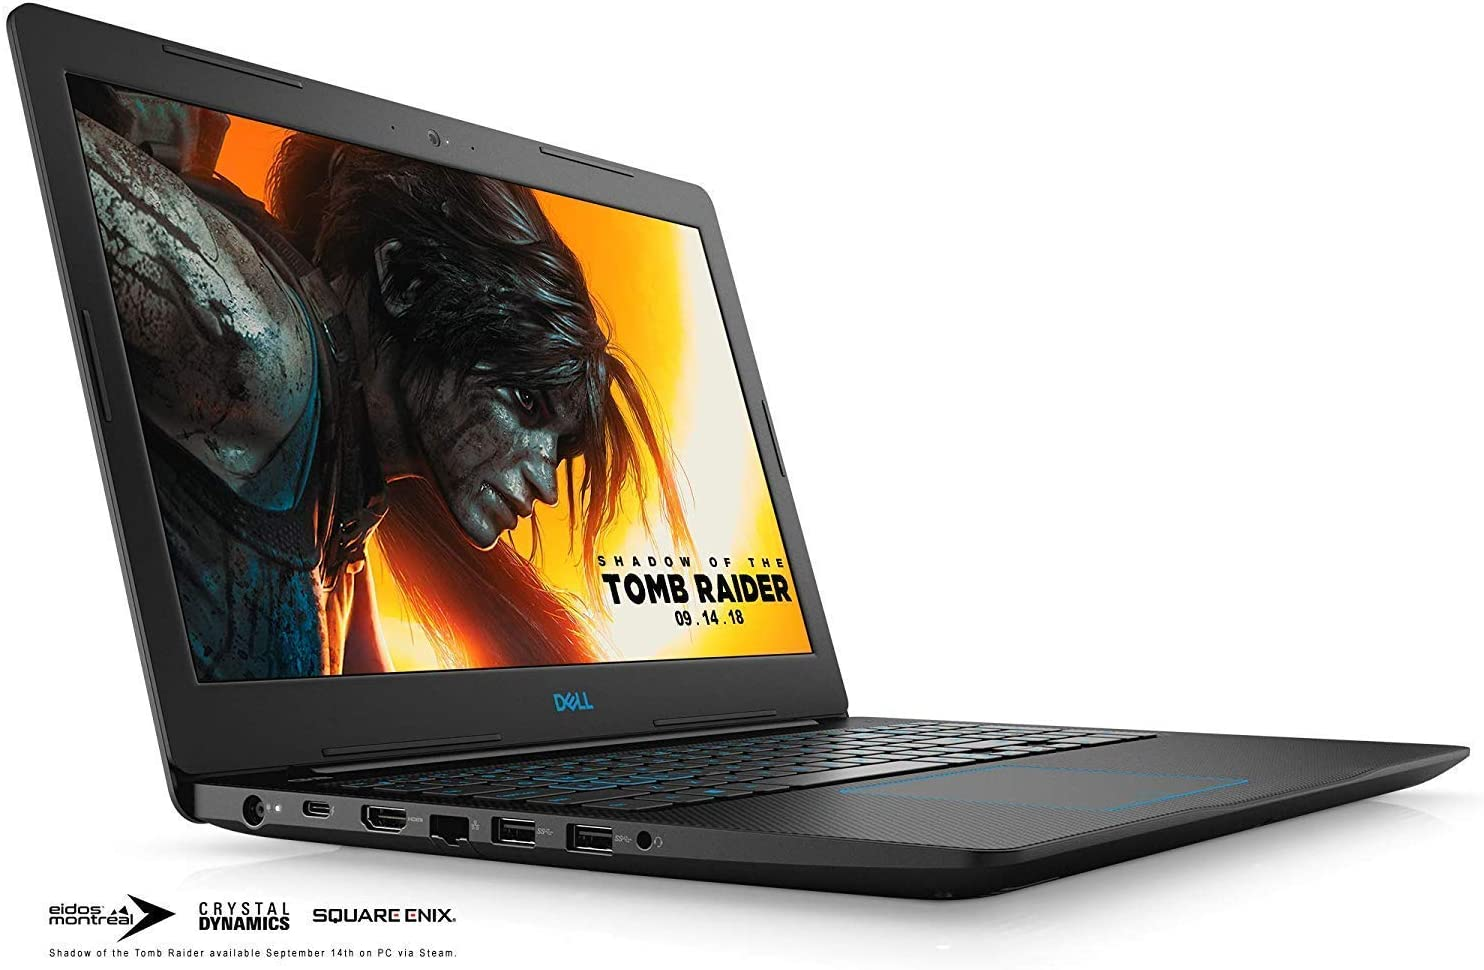 "Dell G3 15 3579 Gaming Laptop Premium 2019, Intel Quad-Core i5-8300H, 15.6"" FHD IPS Display, 12GB DDR4, 256GB PCIe SSD, HDMI Backlit KB MaxxAudio Thunderbolt USB-C WiFi 4GB GeForce GTX 1050Ti Win 10"